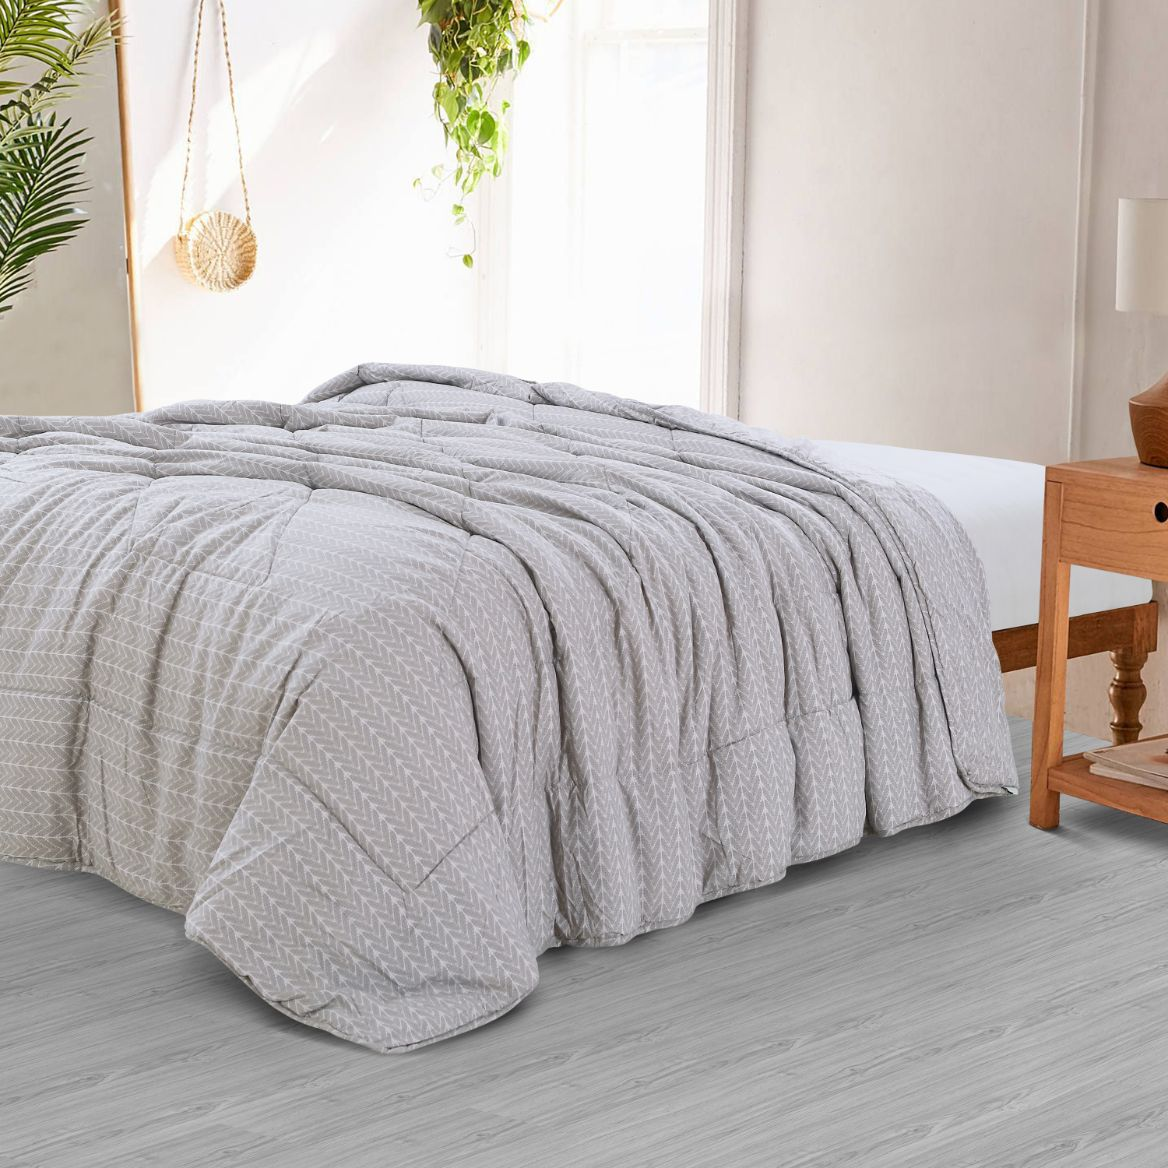 Countryside Summer AC Quilt - Opal Grey